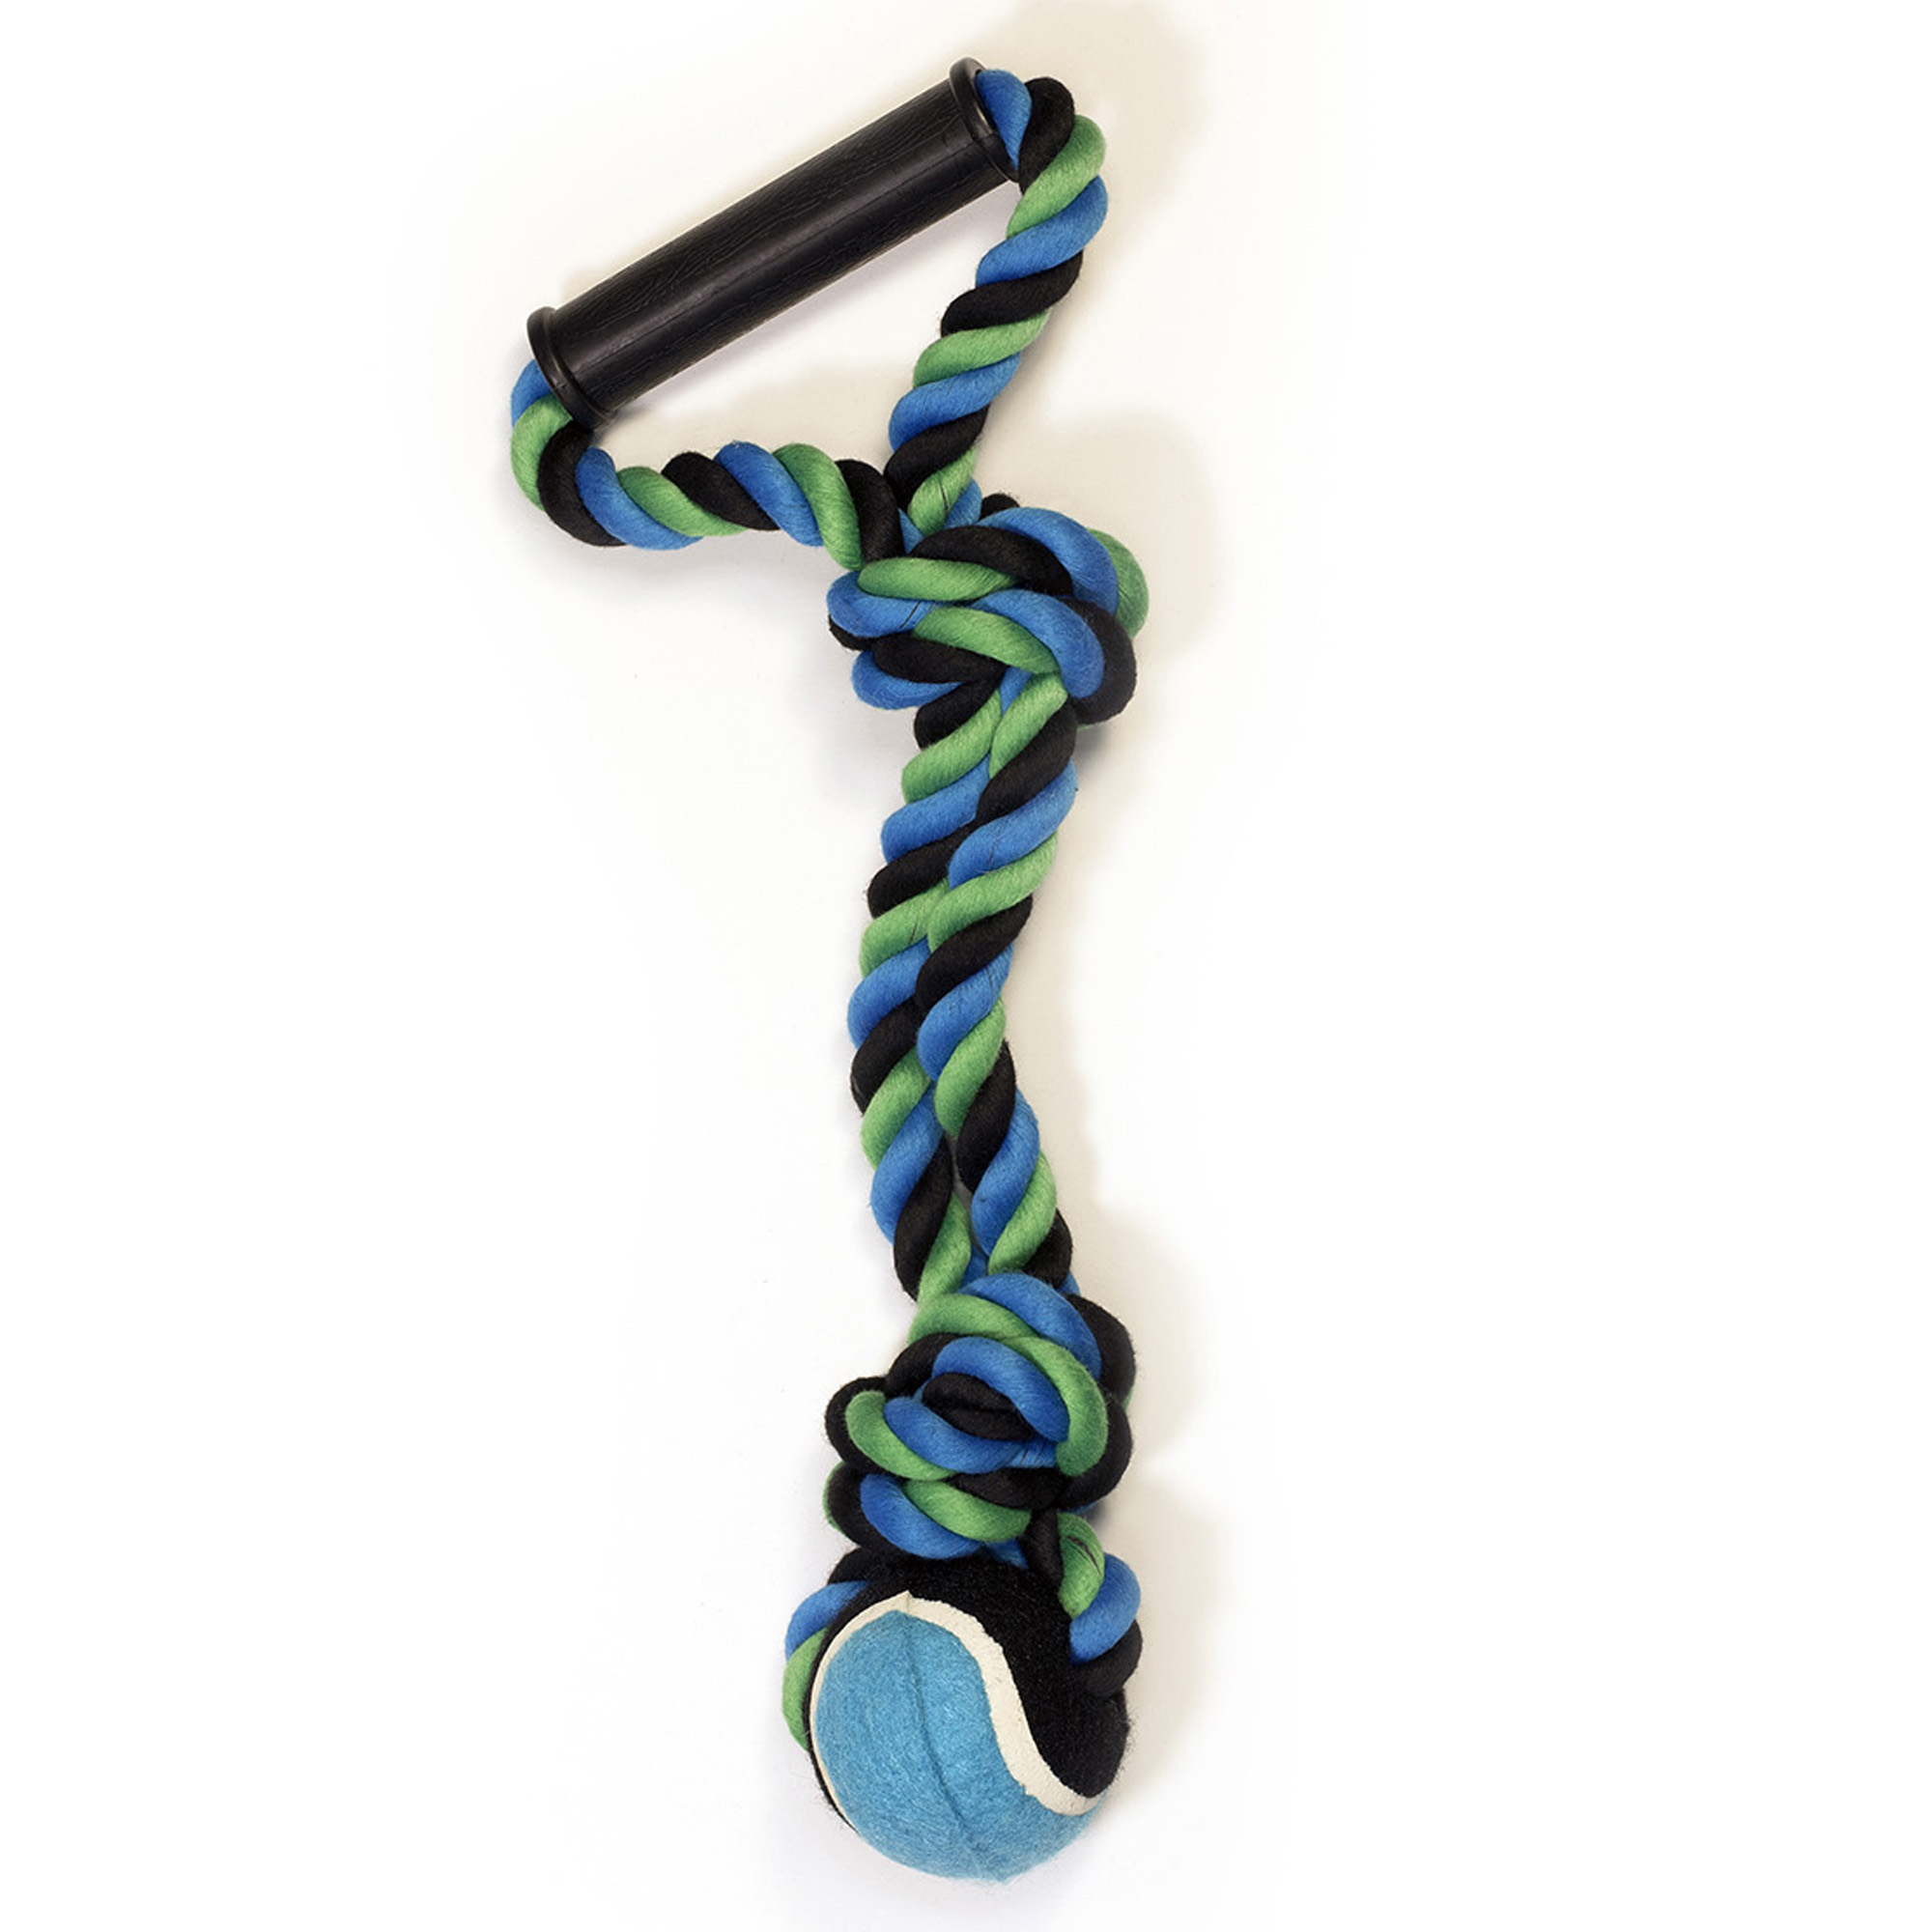 Pet Champion 2 Knot Medium Dog Rope Toy with Ball and Handle